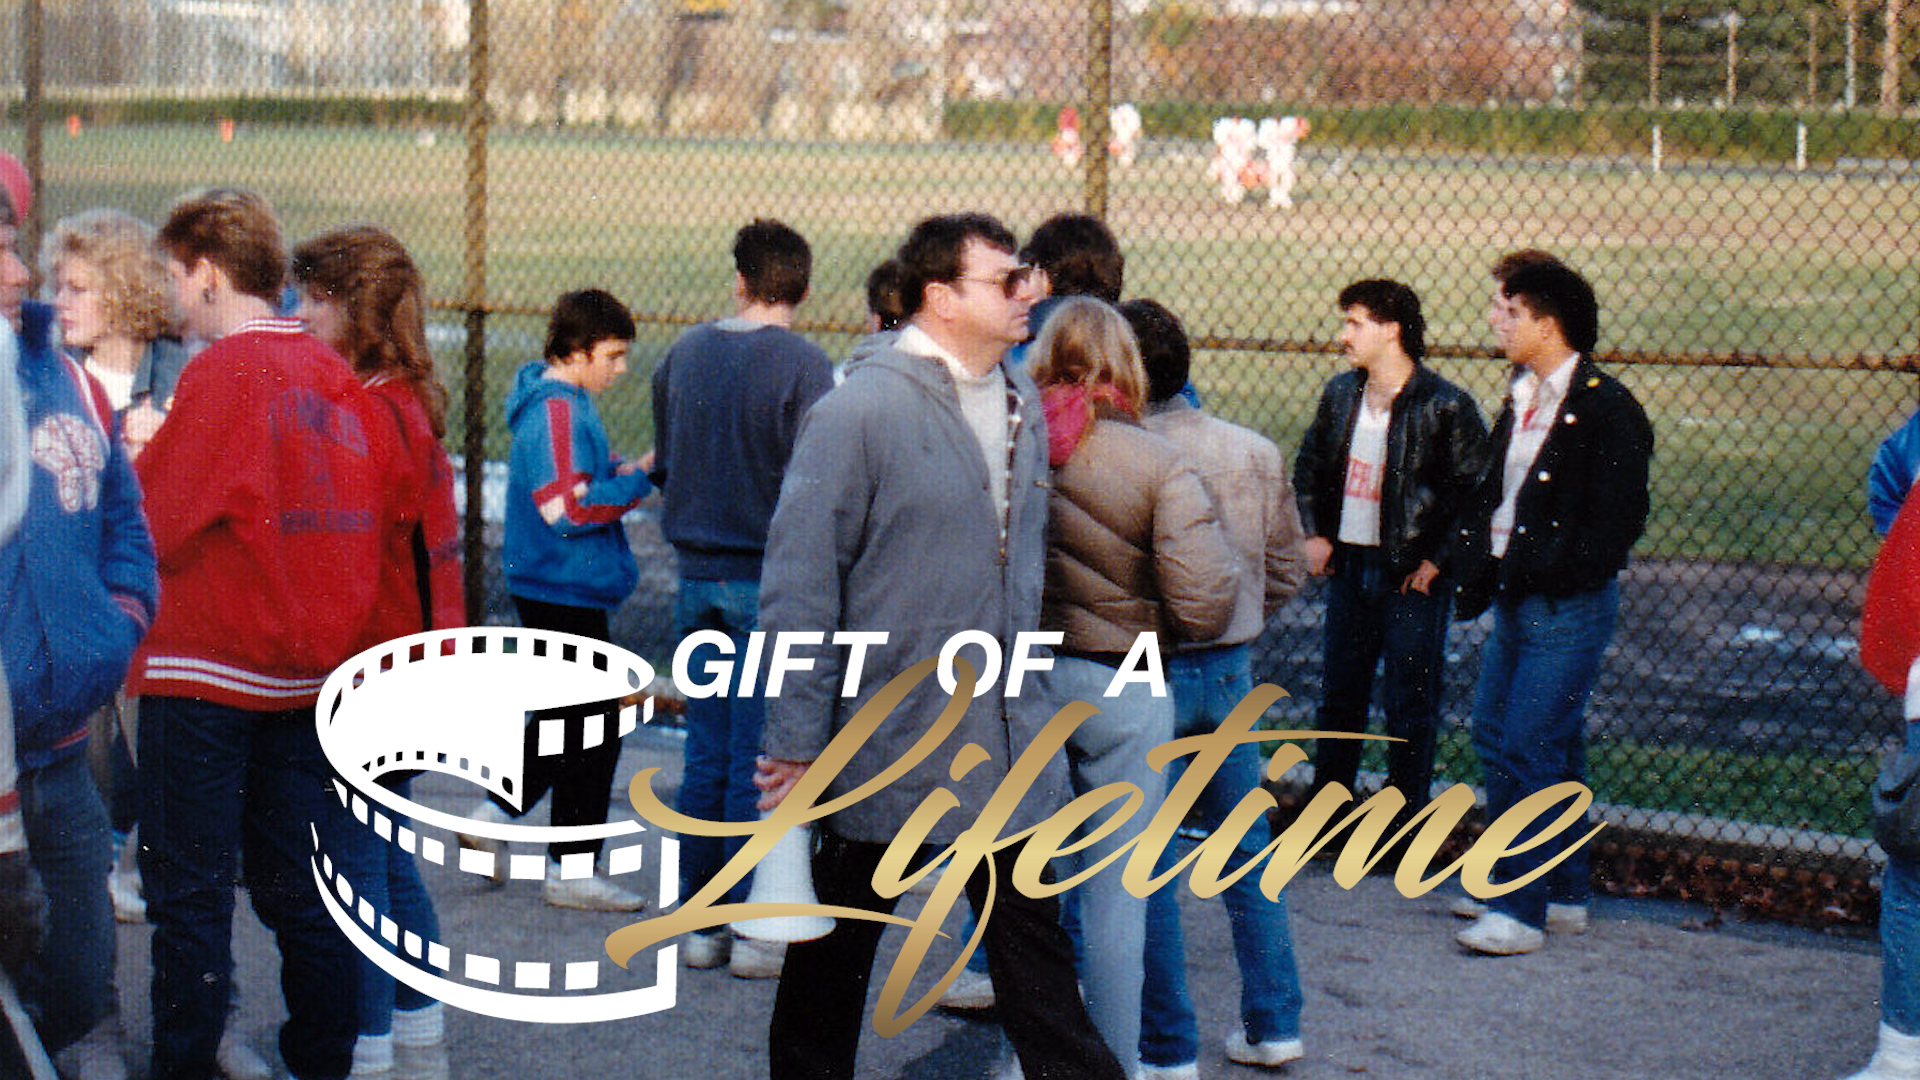 GIFT OF A LIFETIME SHORTS - JOHN & MAUREEN MURRAY - SPORTS